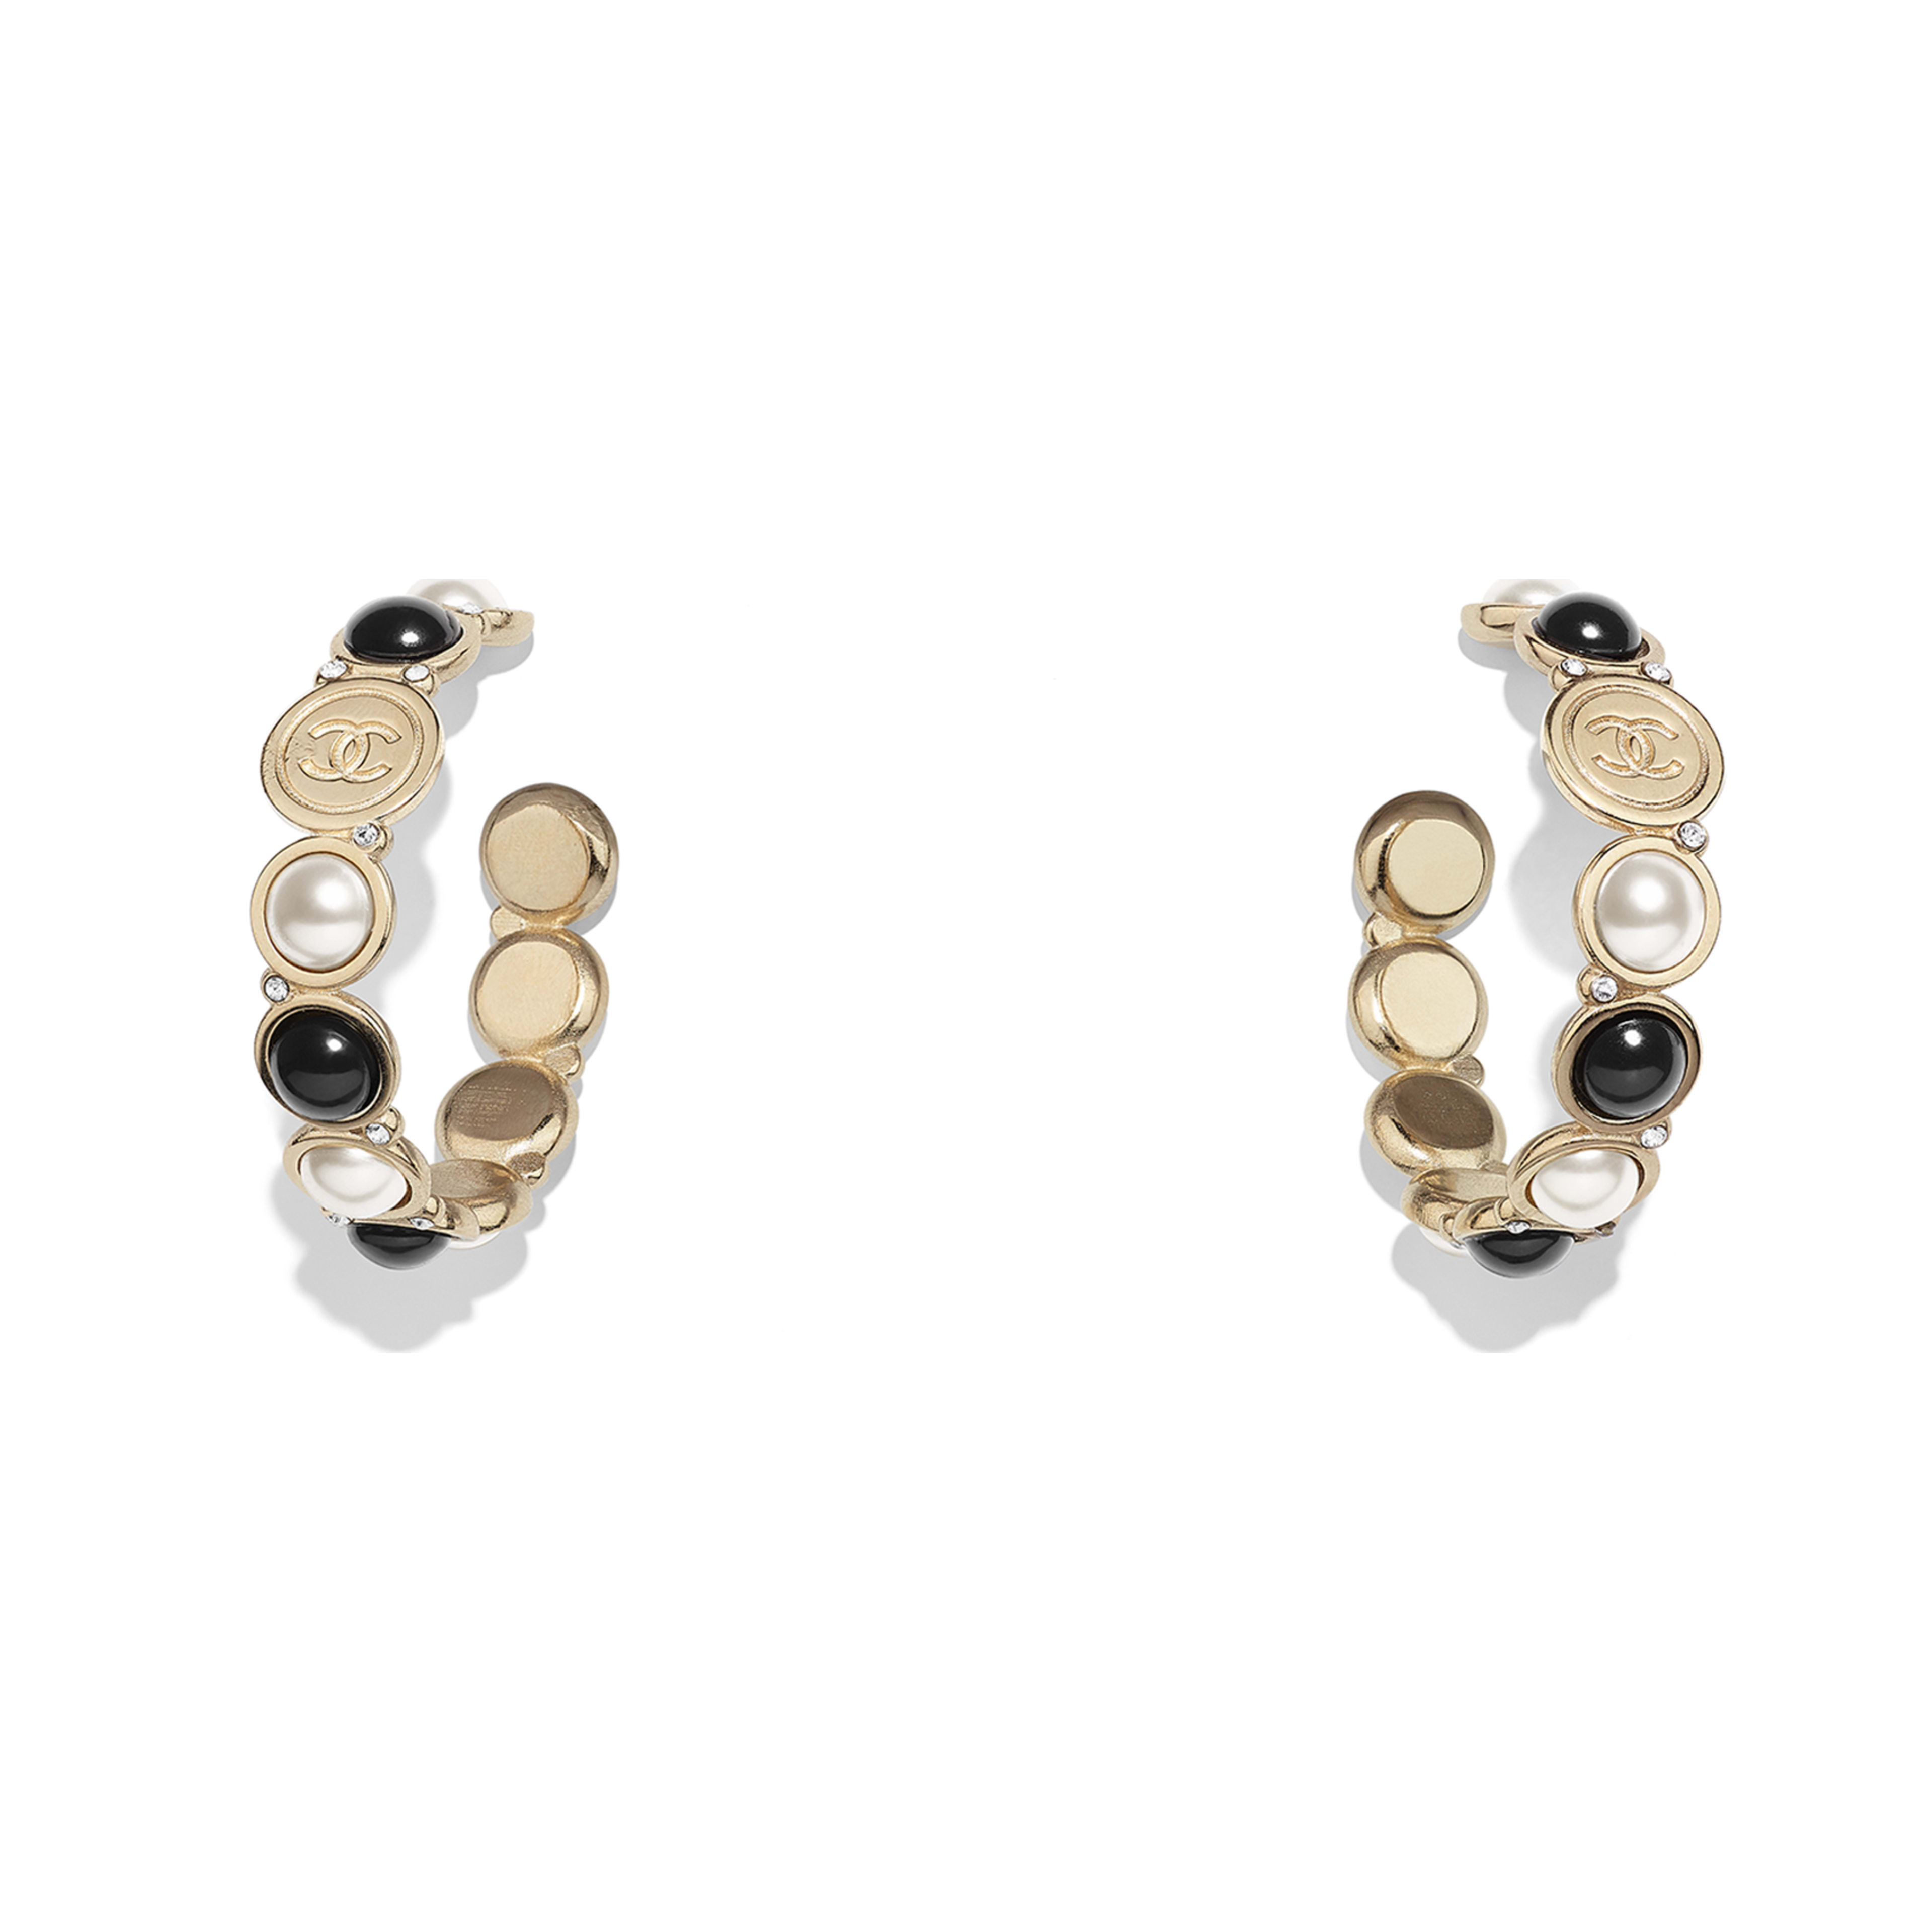 Earrings - Gold, Pearly White, Black & Crystal - Metal, Glass Pearls, Imitation Pearls & Diamanté - Default view - see full sized version